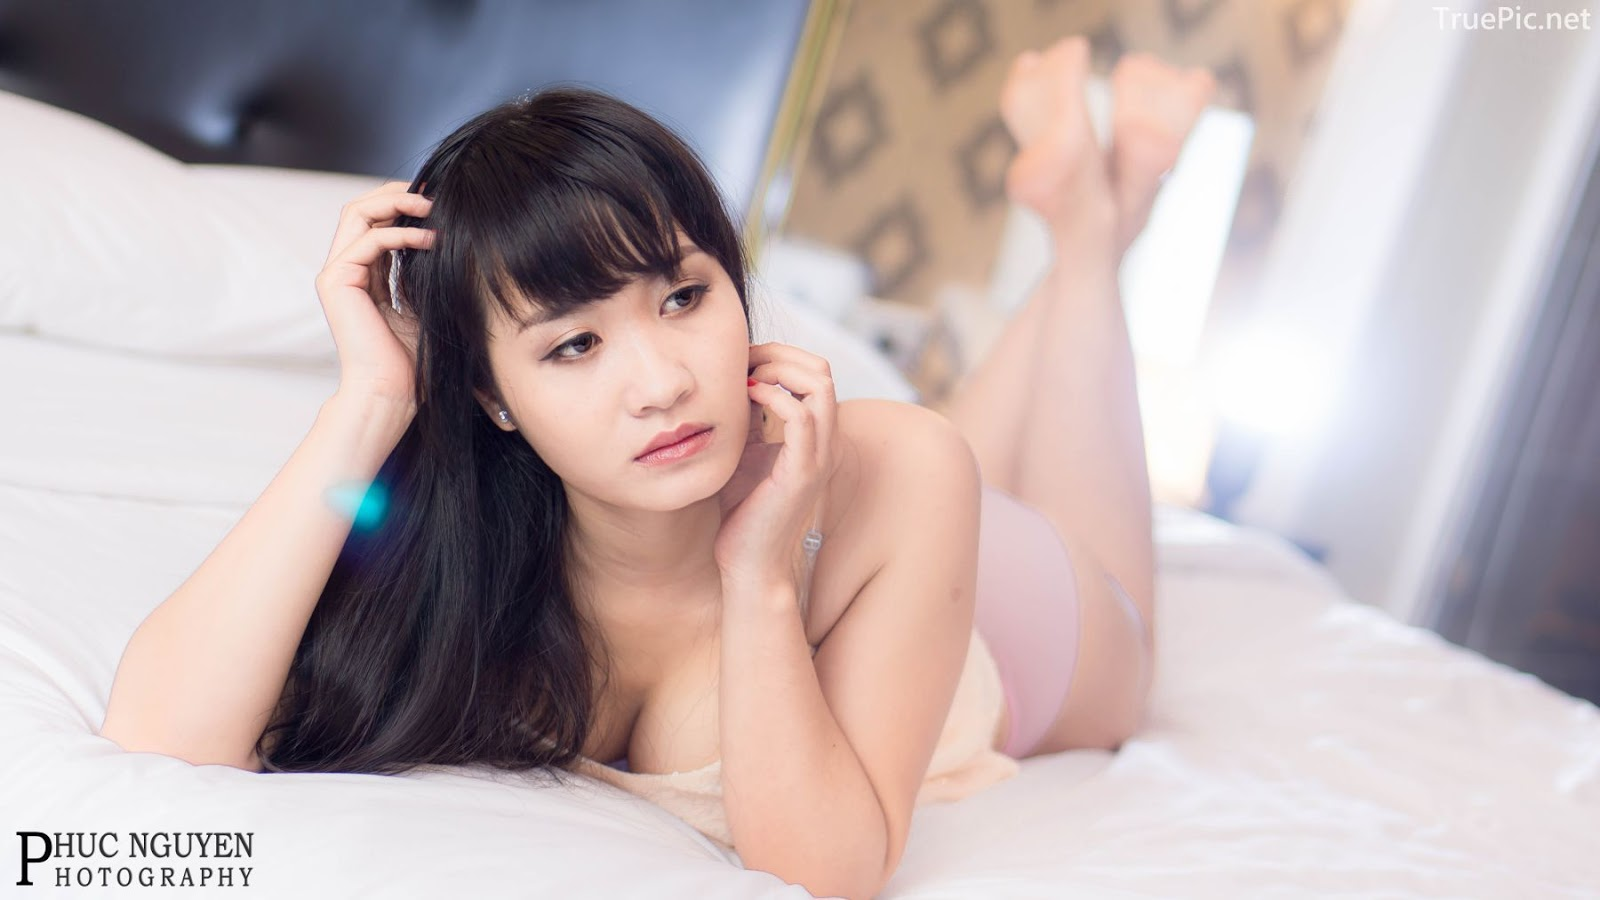 Super hot photos of Vietnamese beauties with lingerie and bikini - Photo by Le Blanc Studio - Part 5 - Picture 7